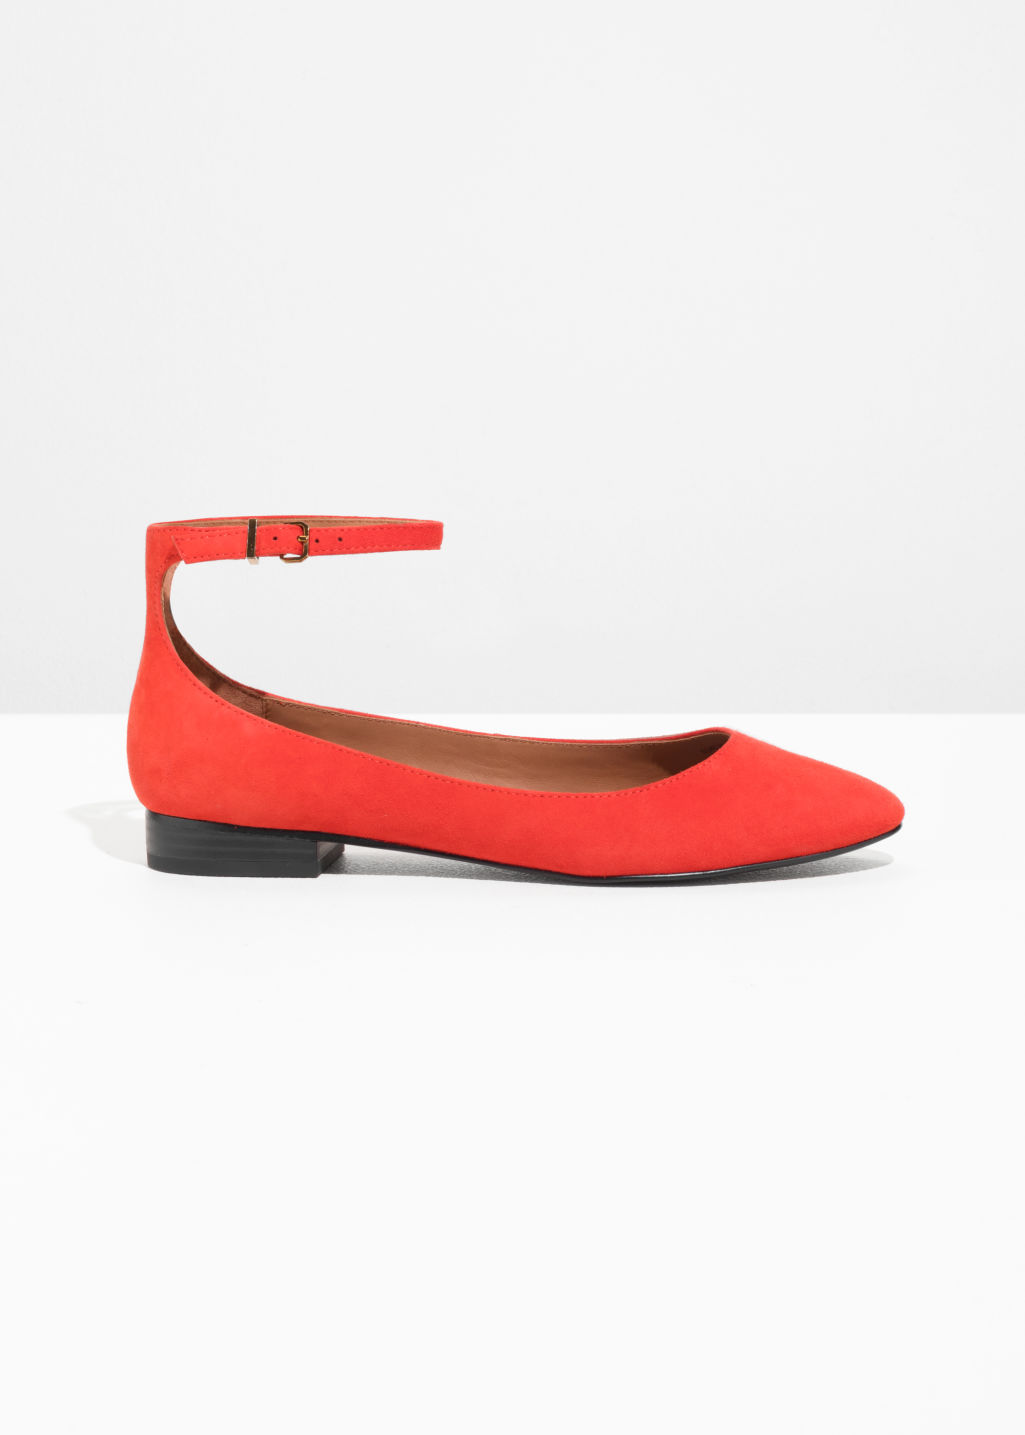 & OTHER STORIES Ankle Strap Suede Ballerinas - Red FjOzc7Sx8Z